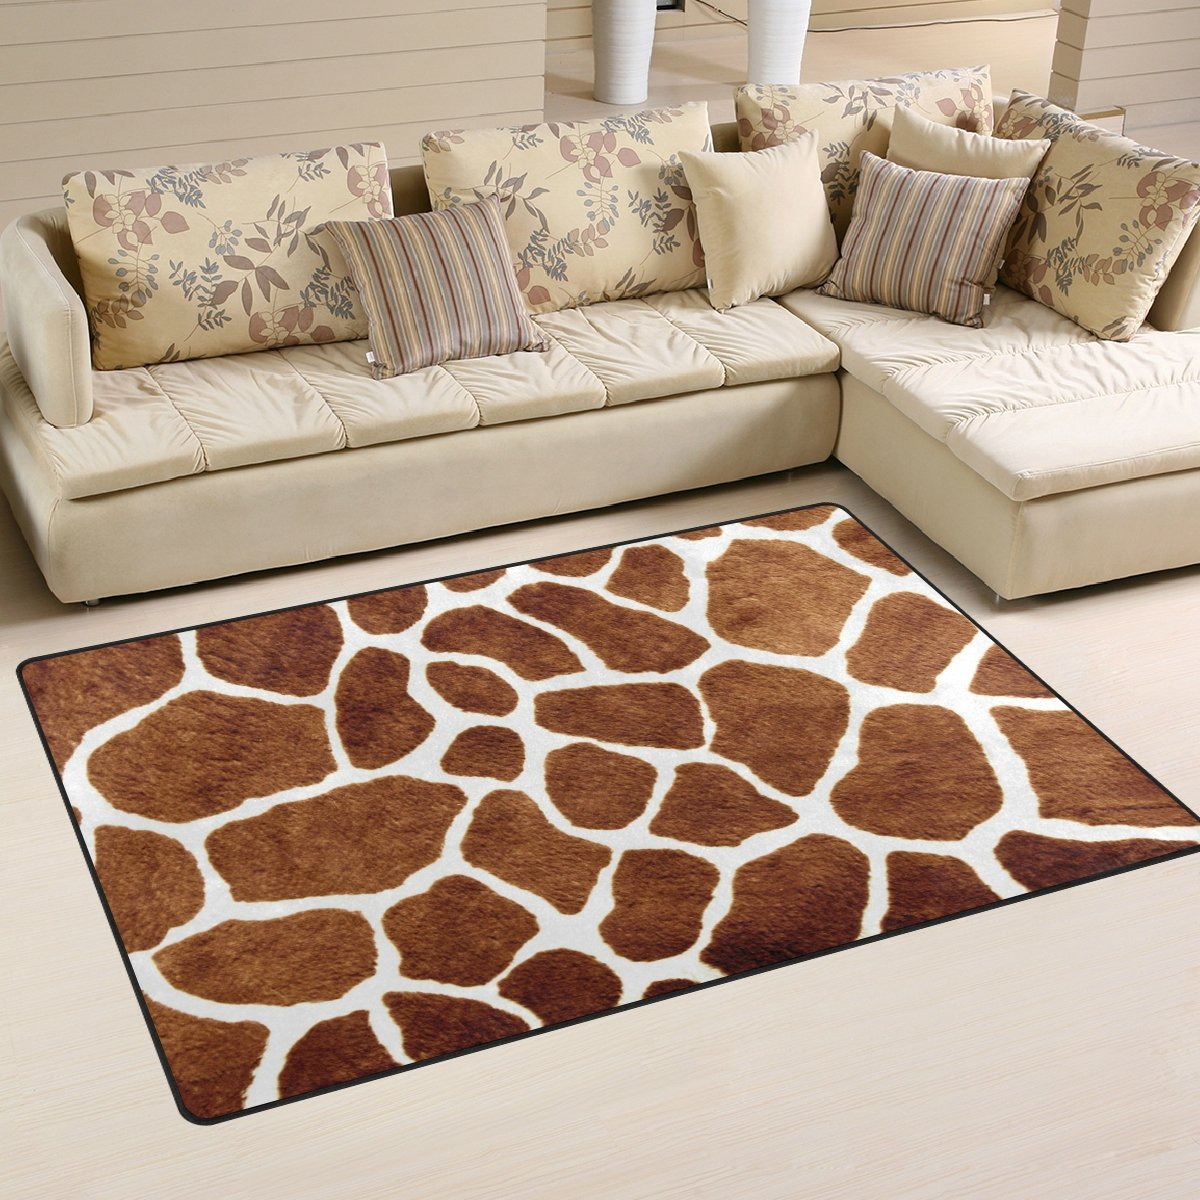 WOZO Giraffe Spot Animal Skin Area Rug Rugs Non-Slip Floor Mat Doormats Living Room Bedroom 60 x 39 inches